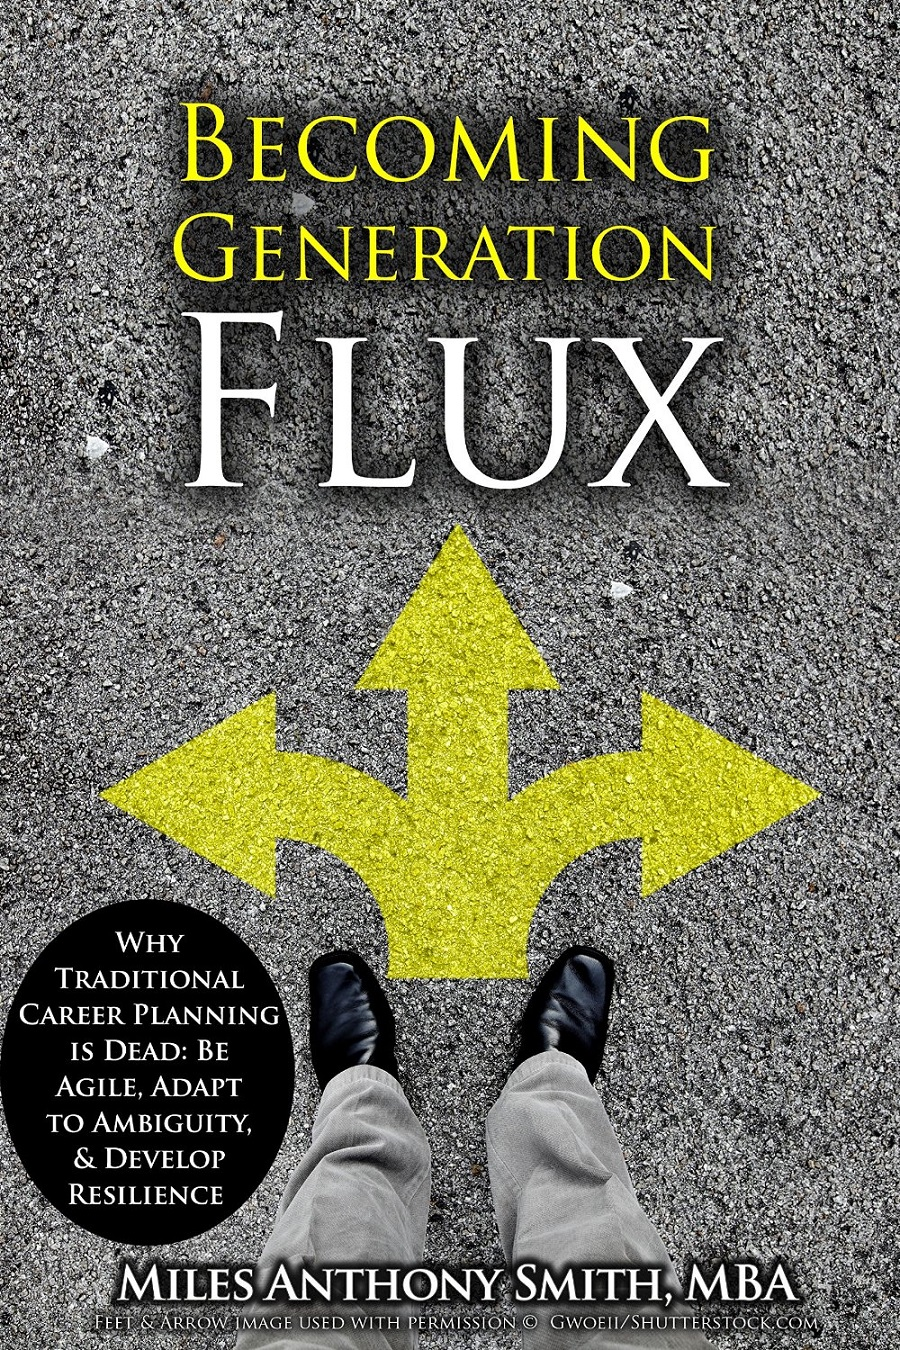 Becoming Generation Flux by Miles Anthony Smith